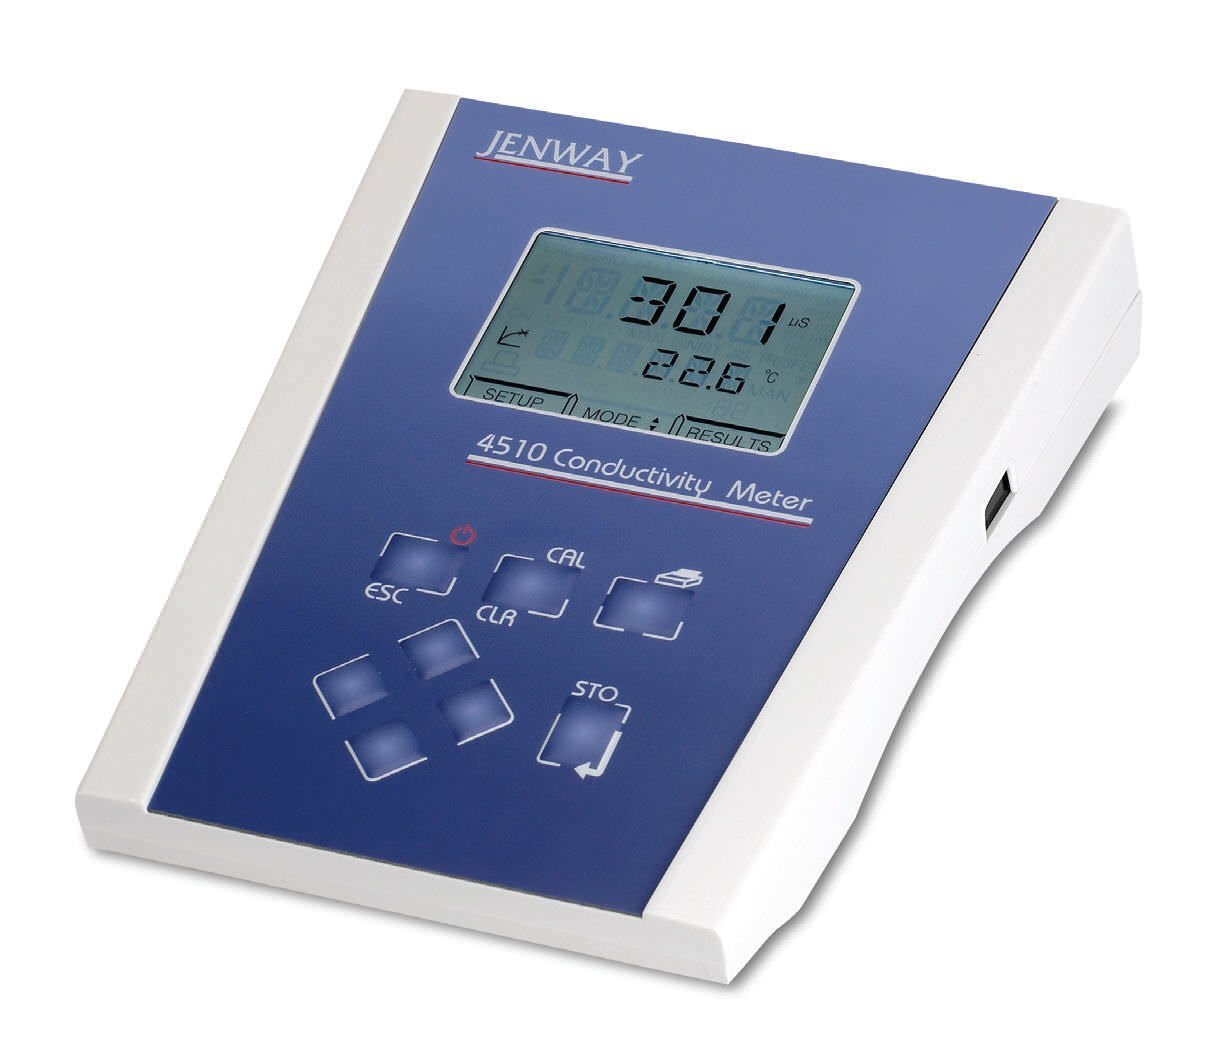 Ph And Conductivity Meter : Model ph conductivity meter with electrodes jenway